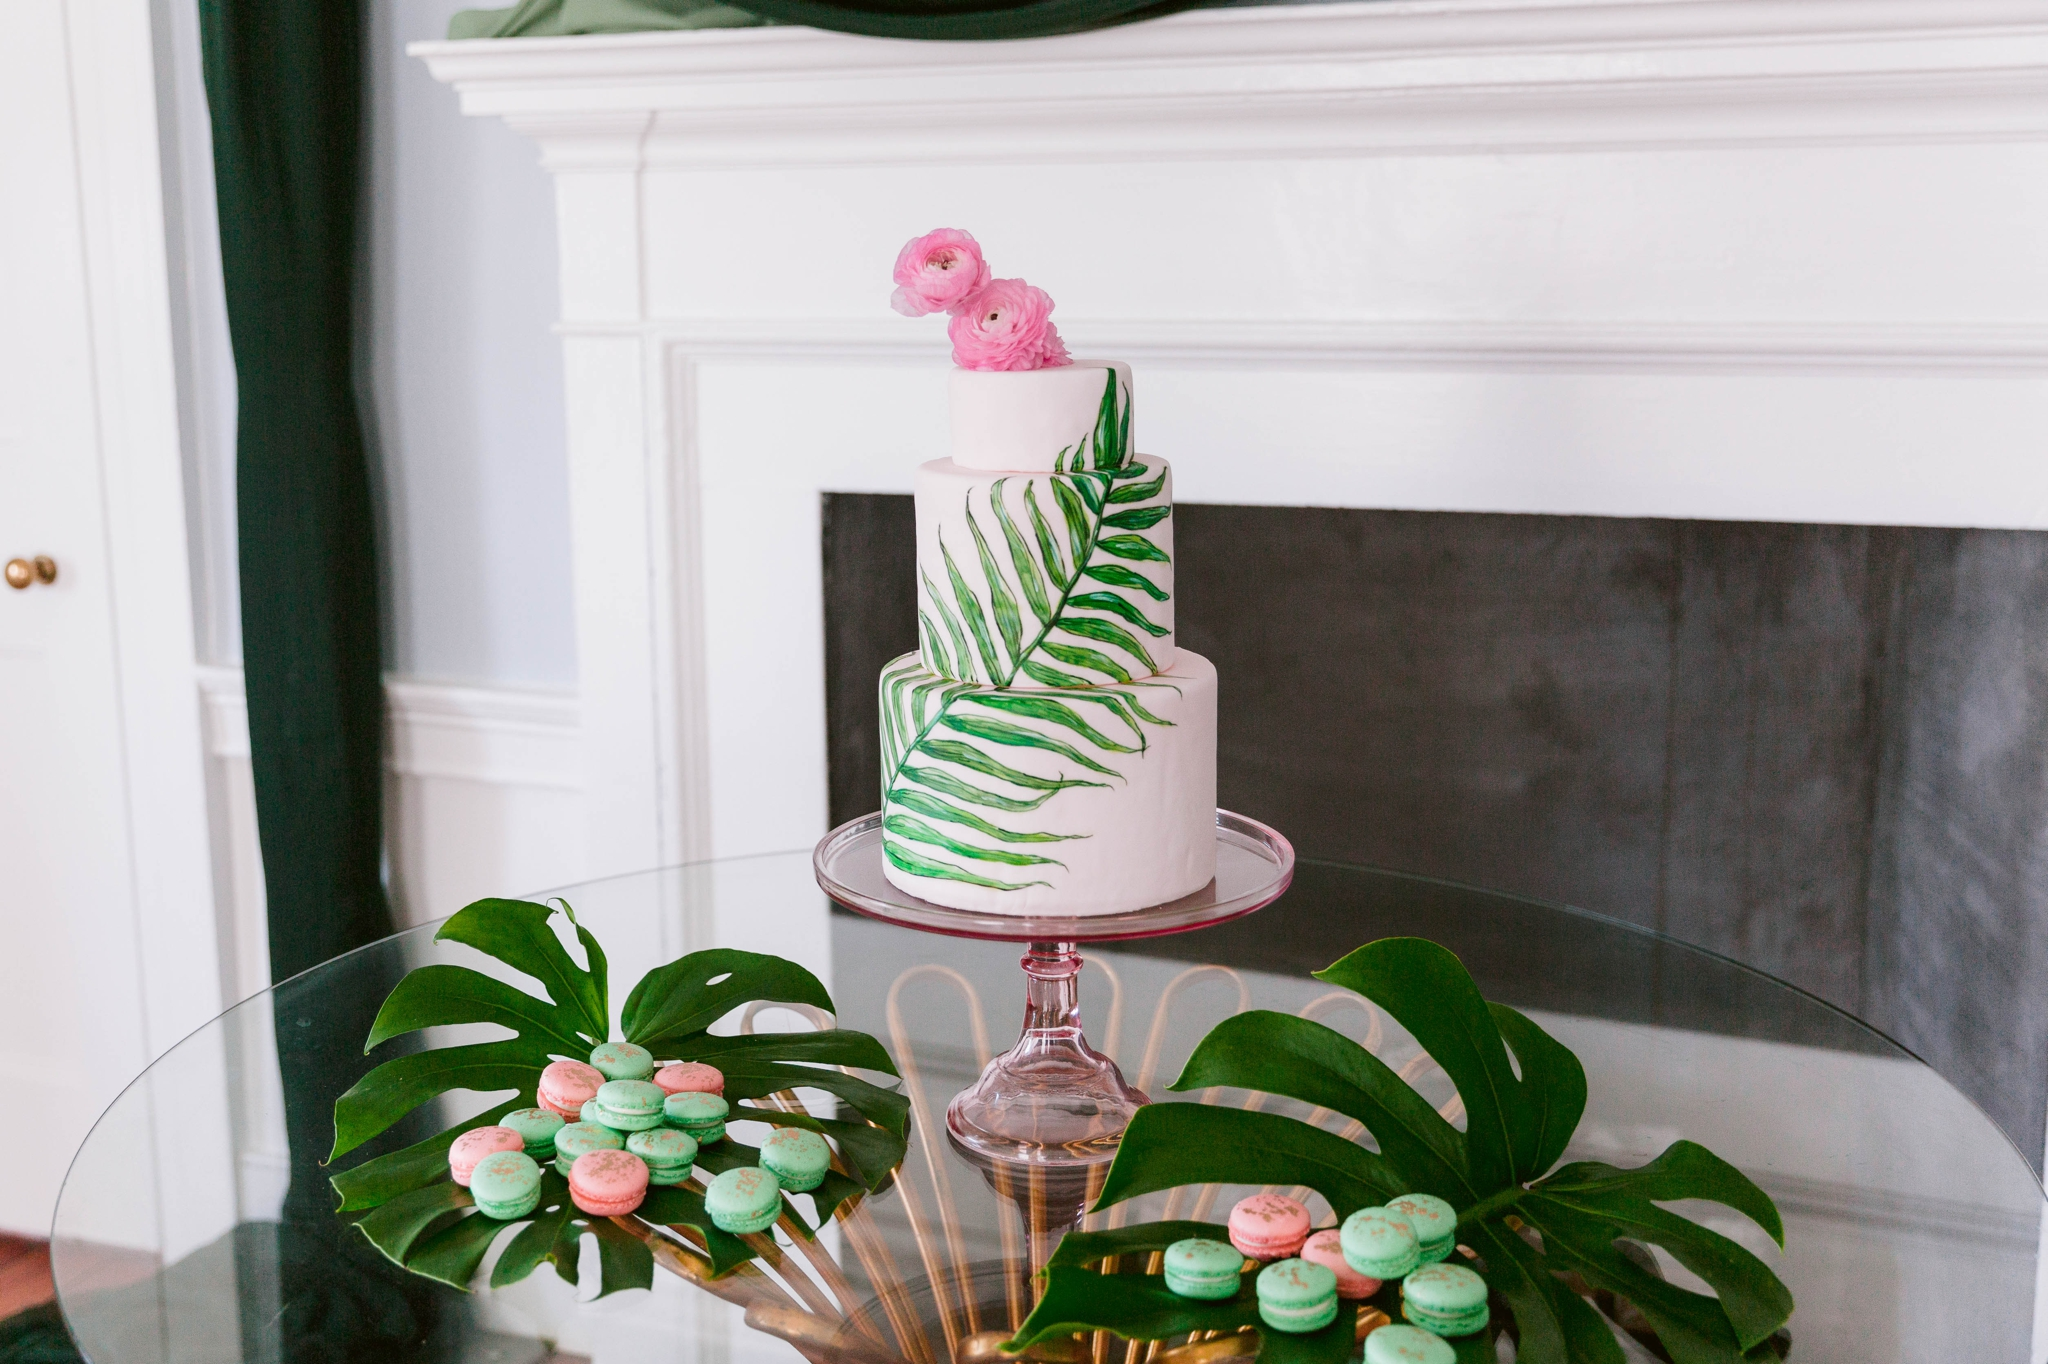 Tropical Wedding Cake and desert table with macarons - Navy, Green, Gold and Berry colored Tropical Wedding Inspiration for your Wedding in Hawaii! - Honolulu, Oahu, Hawaii Photographer - Fine Art Film Photography - Light and Airy